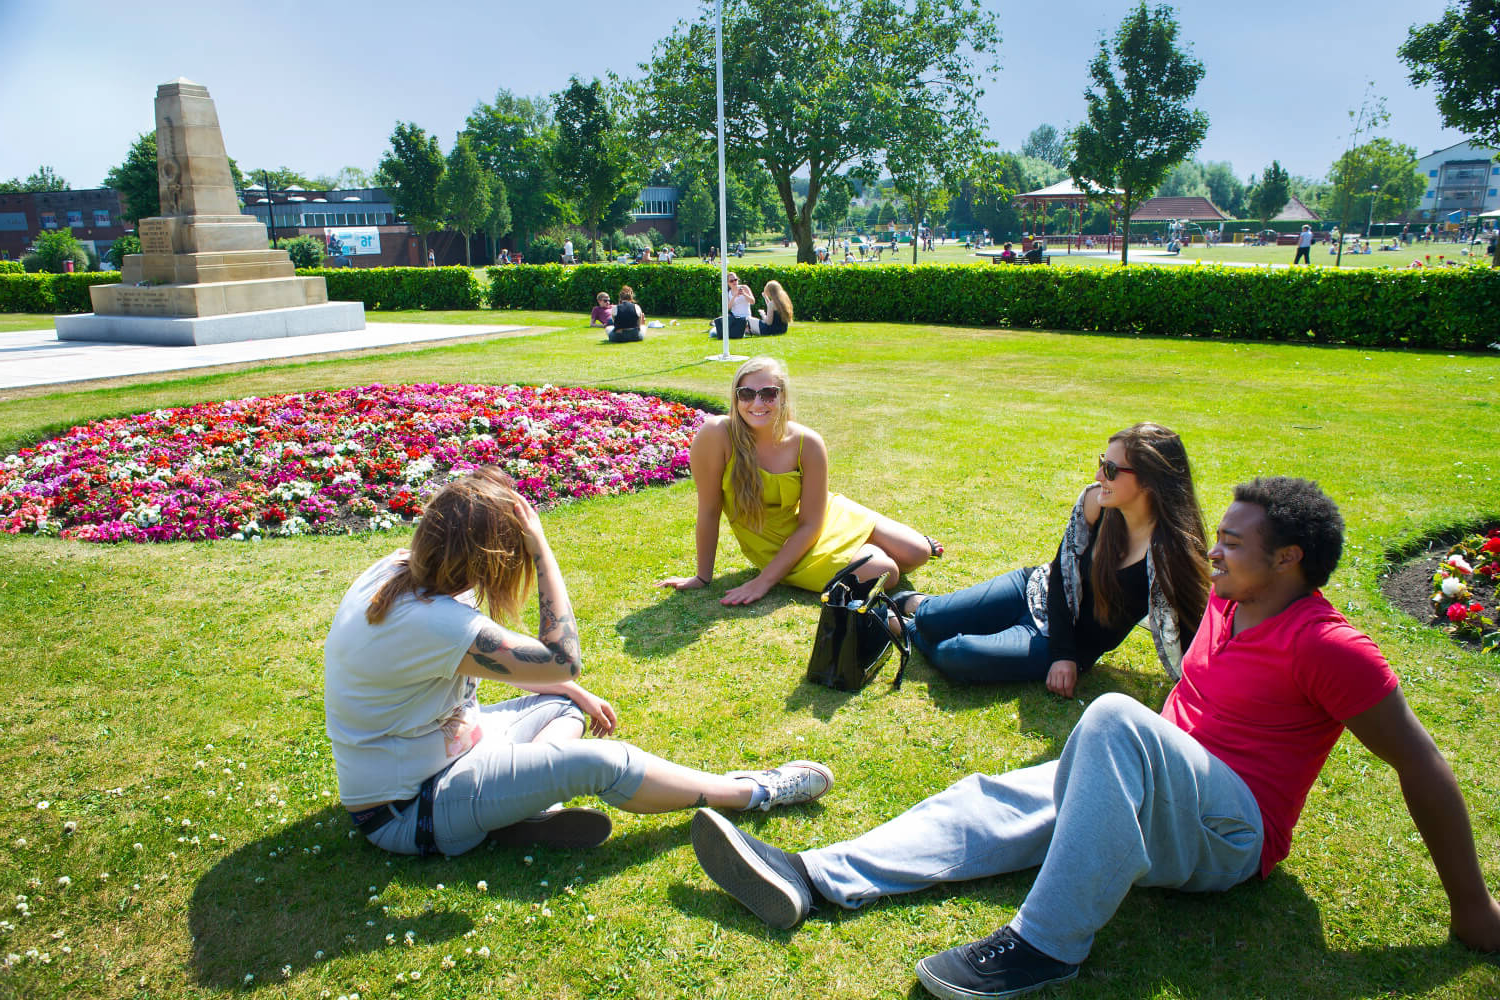 Four students relax on the grass in C要么onation Park in 奥姆斯科克.